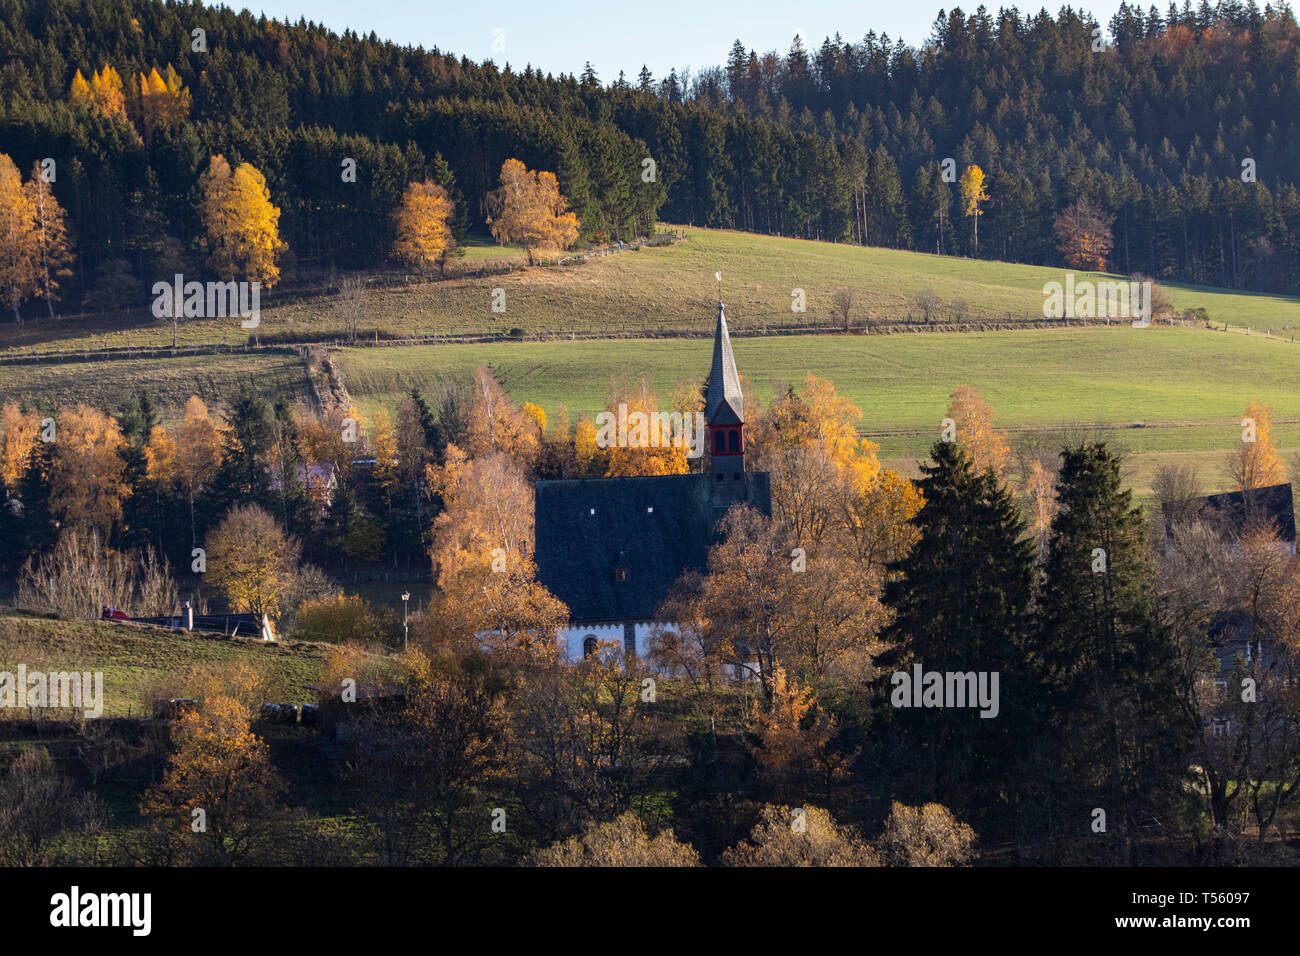 Autumn forest, small church at SchŸllar, near Bad Berleburg, Siegen district Wittgenstein, in Sauerland area, NRW, Germany, - Stock Image